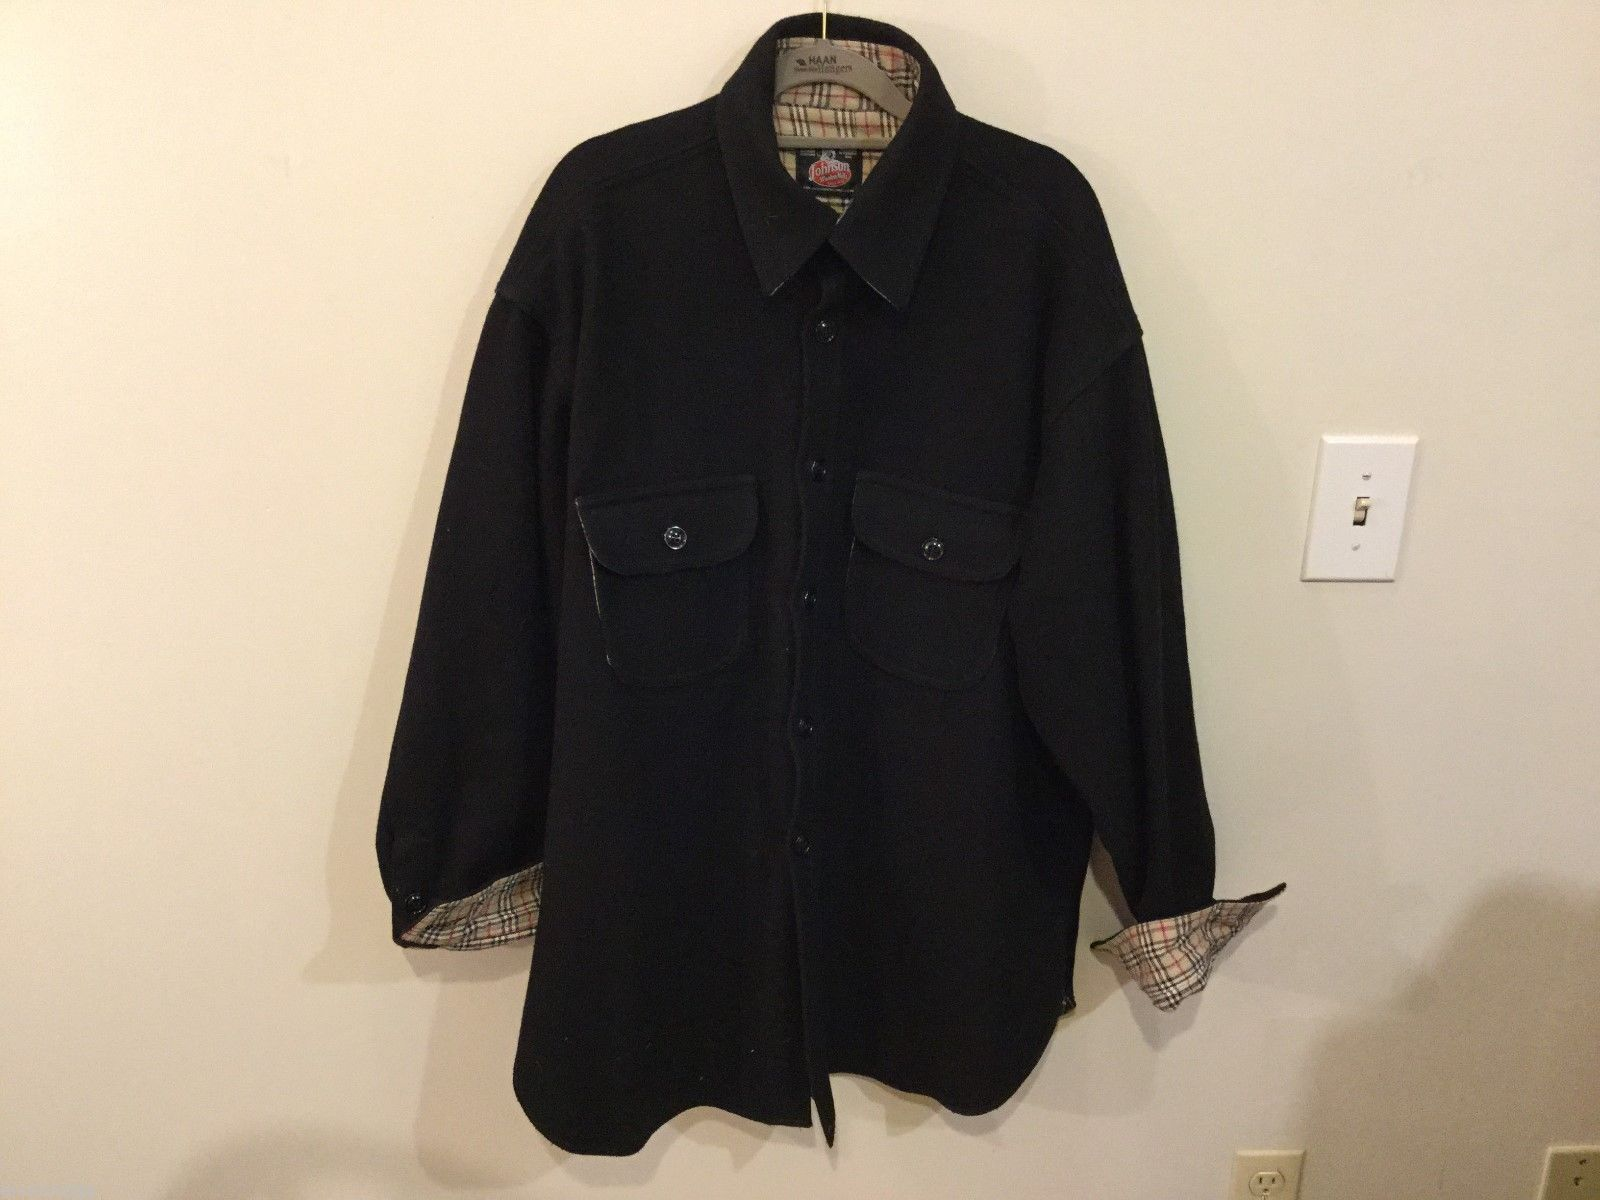 Johnson Woolen Mills Mens Black Coat Size Unknown, See Measurements